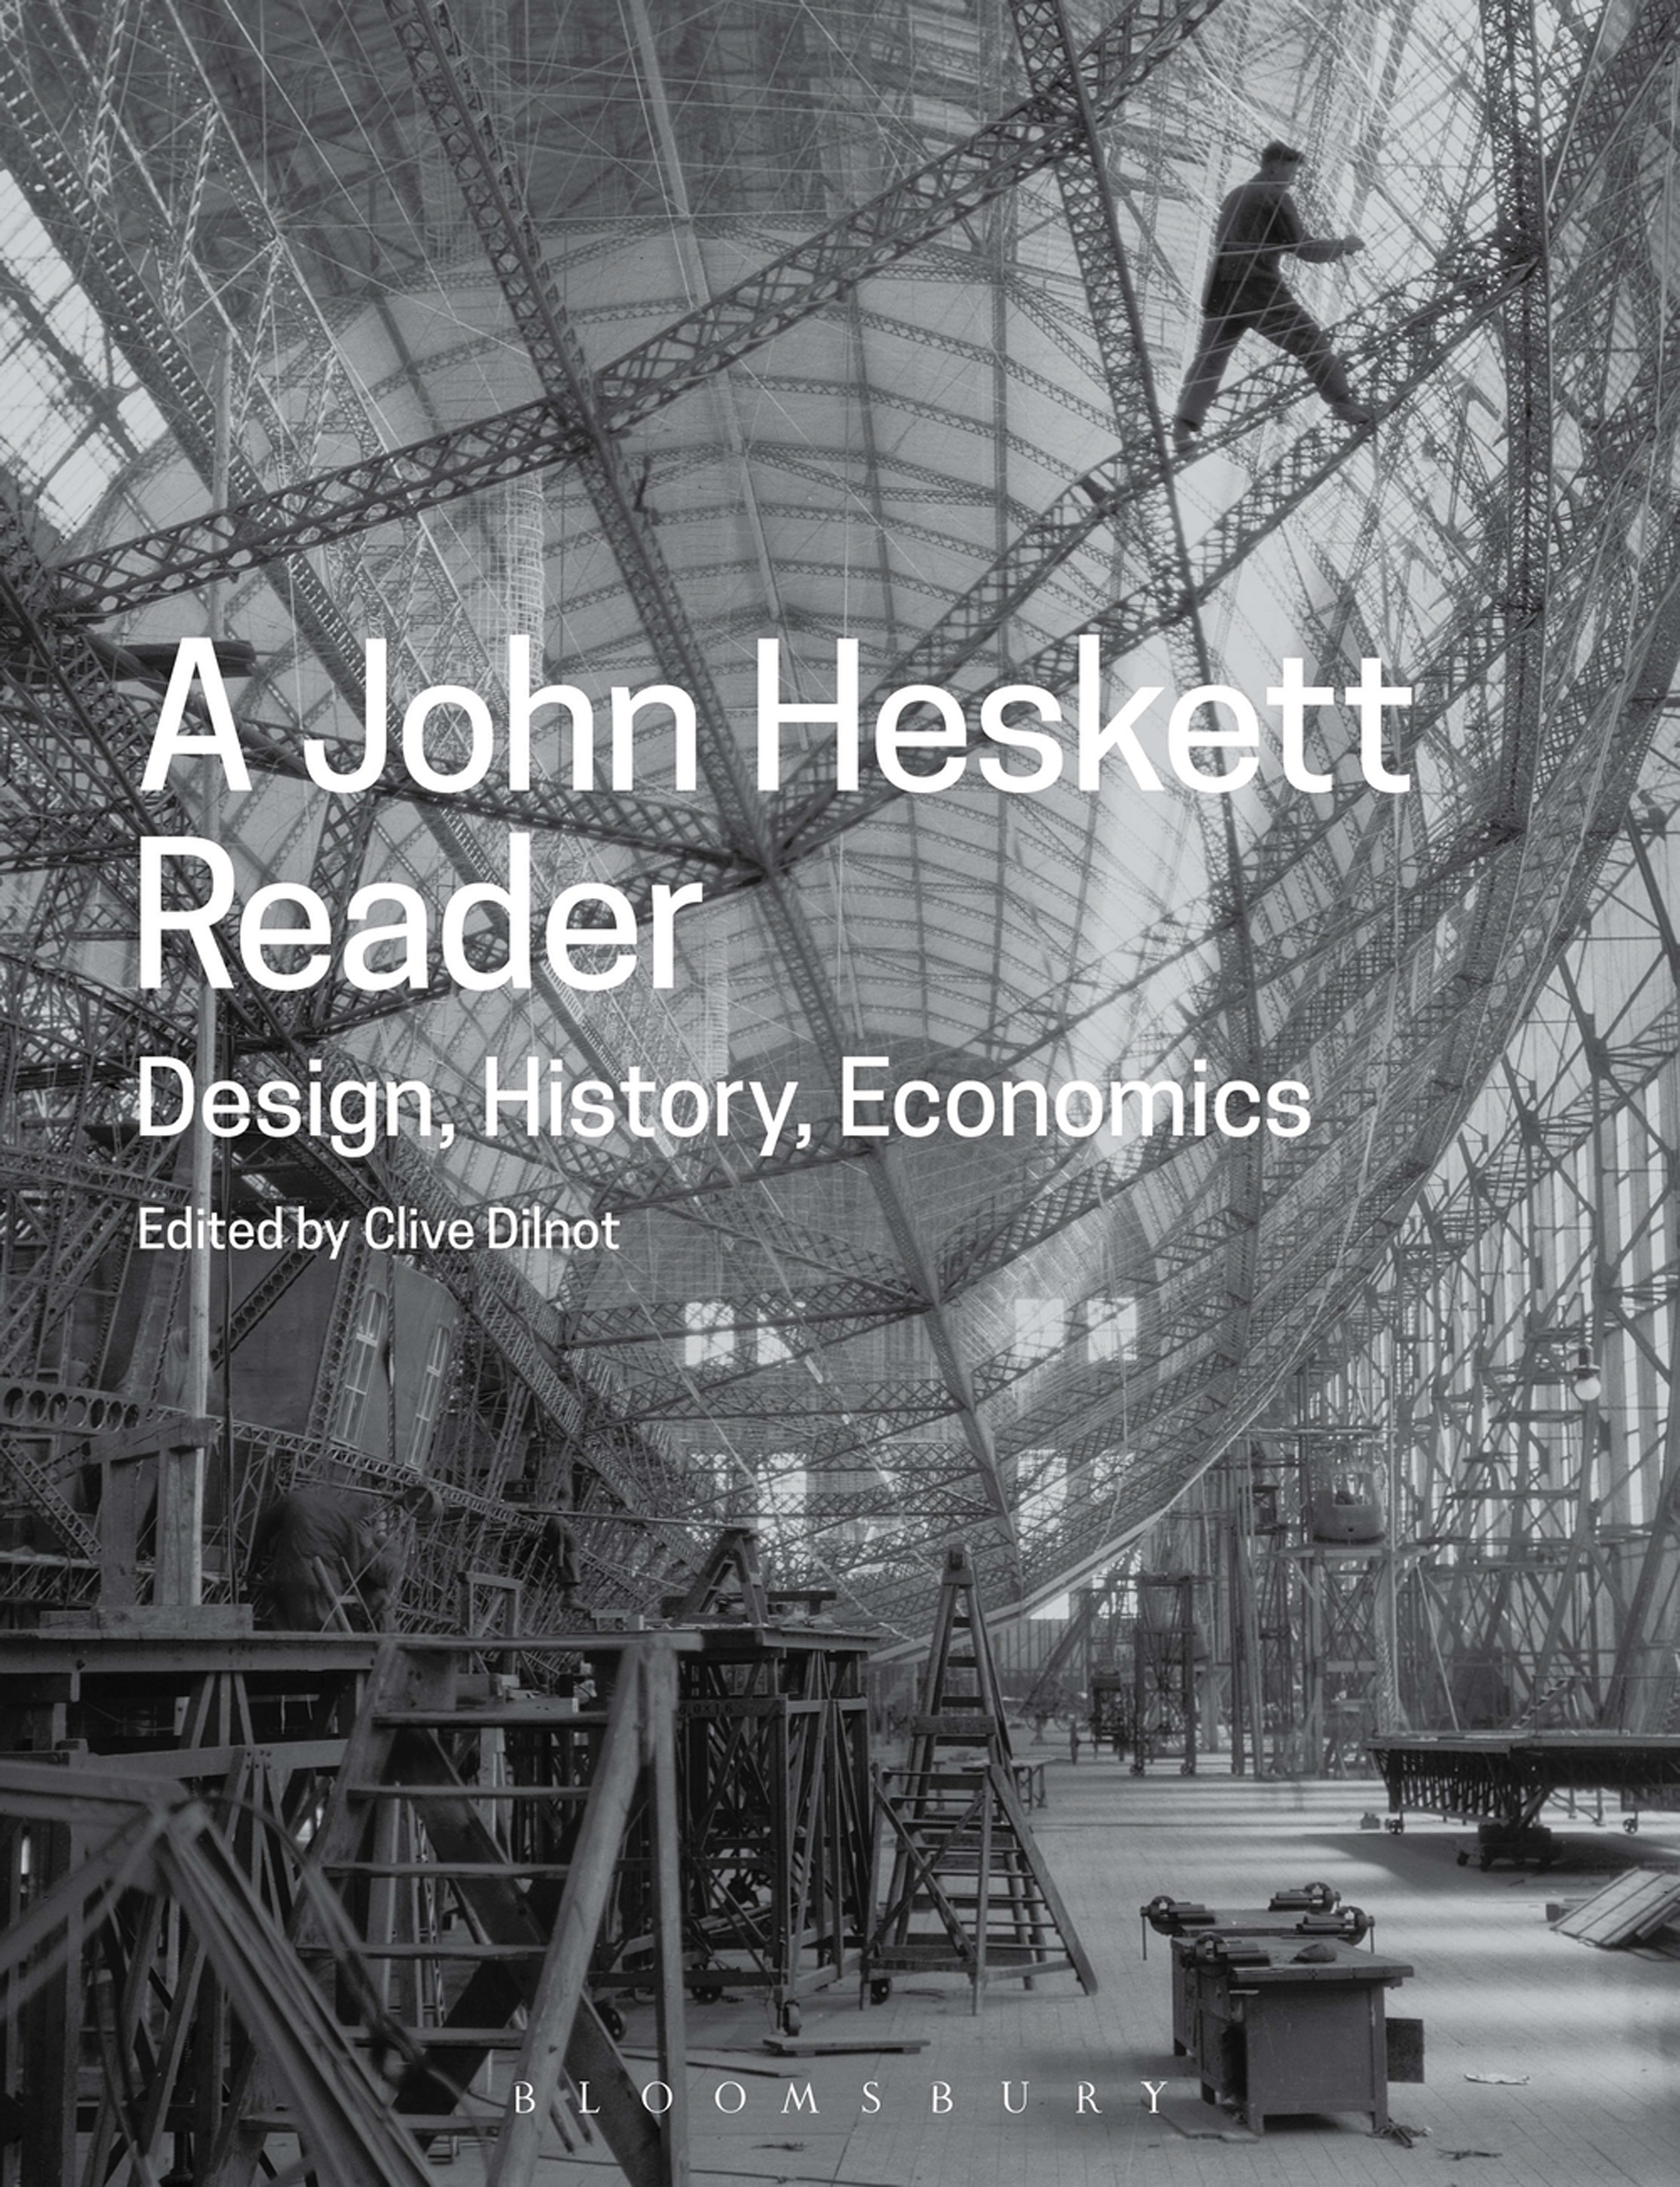 Bloomsbury Design Library Ebooks Piping Layout Engineer Interview Engine Schematic A John Heskett Reader